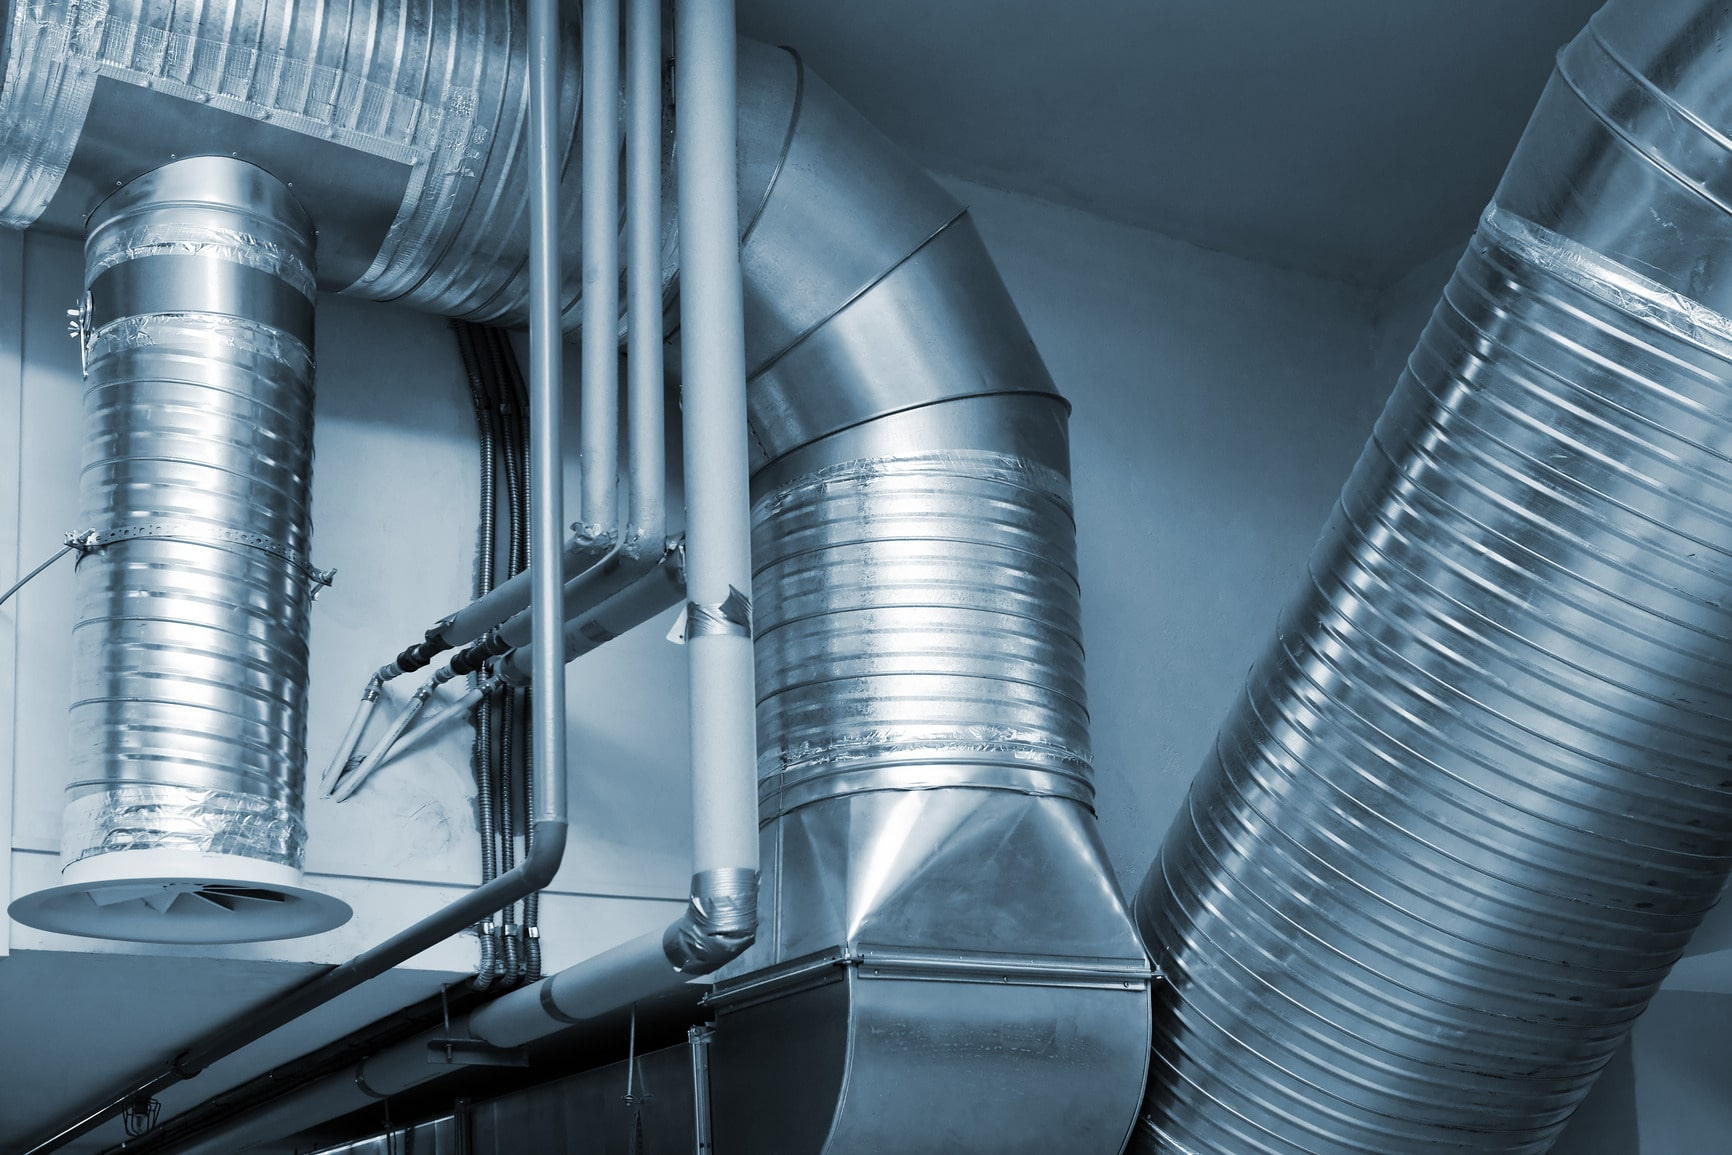 photodune-2168131-system-of-ventilating-pipes-m1